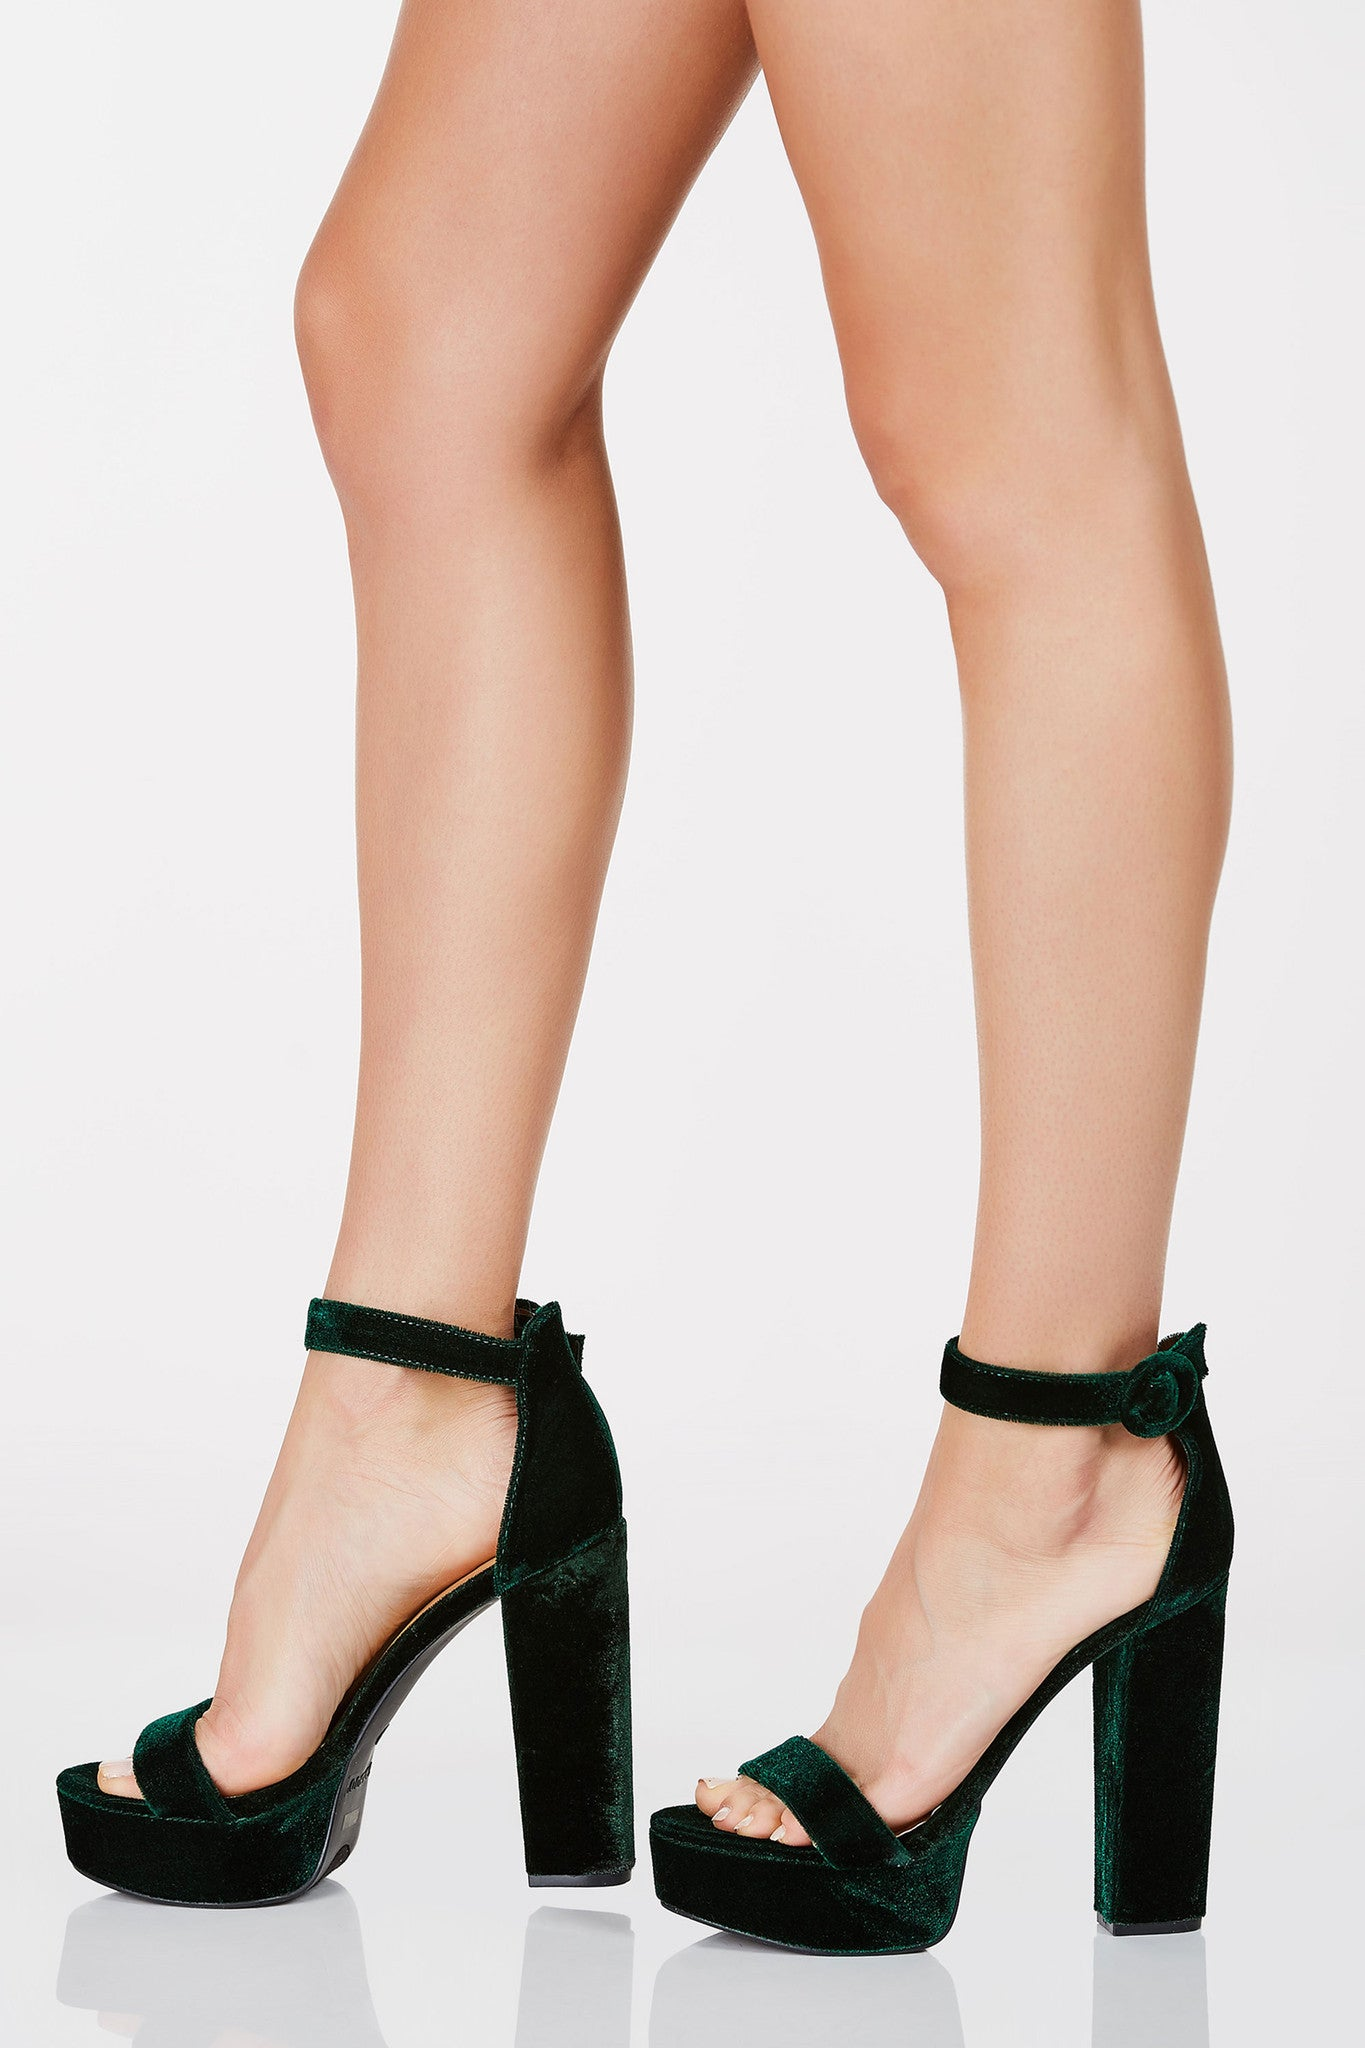 High platforms with ankle strap closure. Open toe with velvet finish all around. Block heels with round buckle for fit.